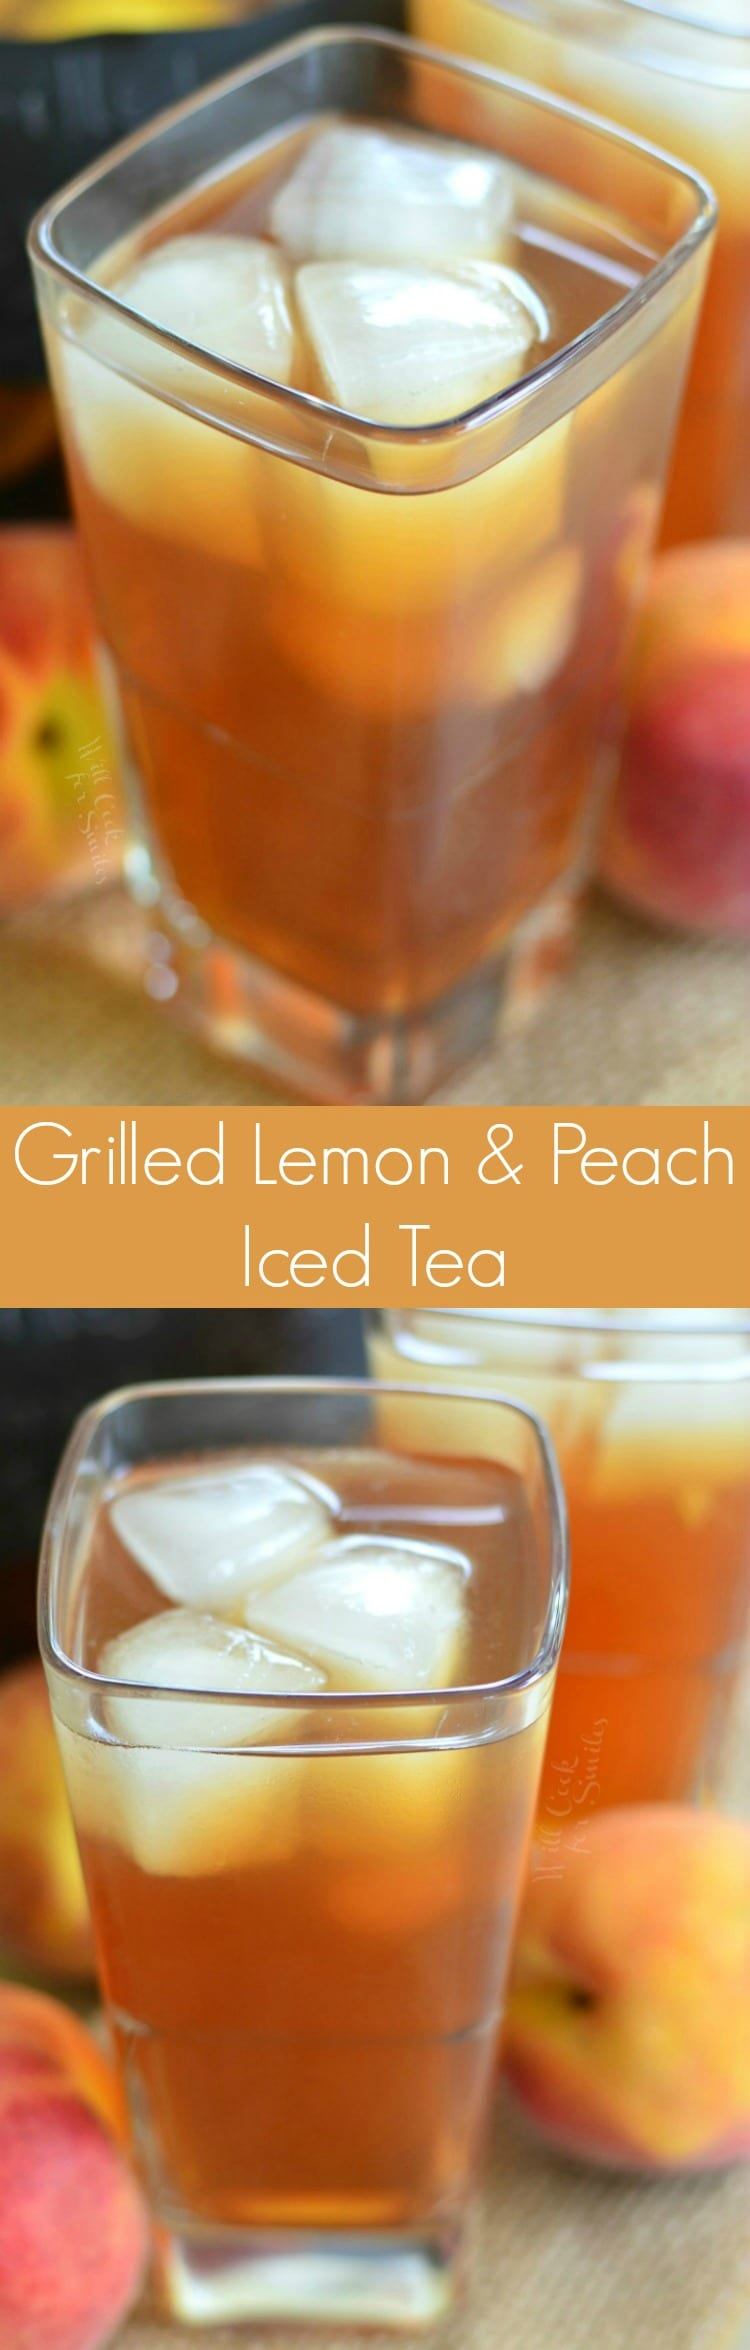 Grilled Lemon Peach Iced Tea. Refreshing drink for the summer and a delicious experiment that bringing a little smokey grill flavor into a drink.